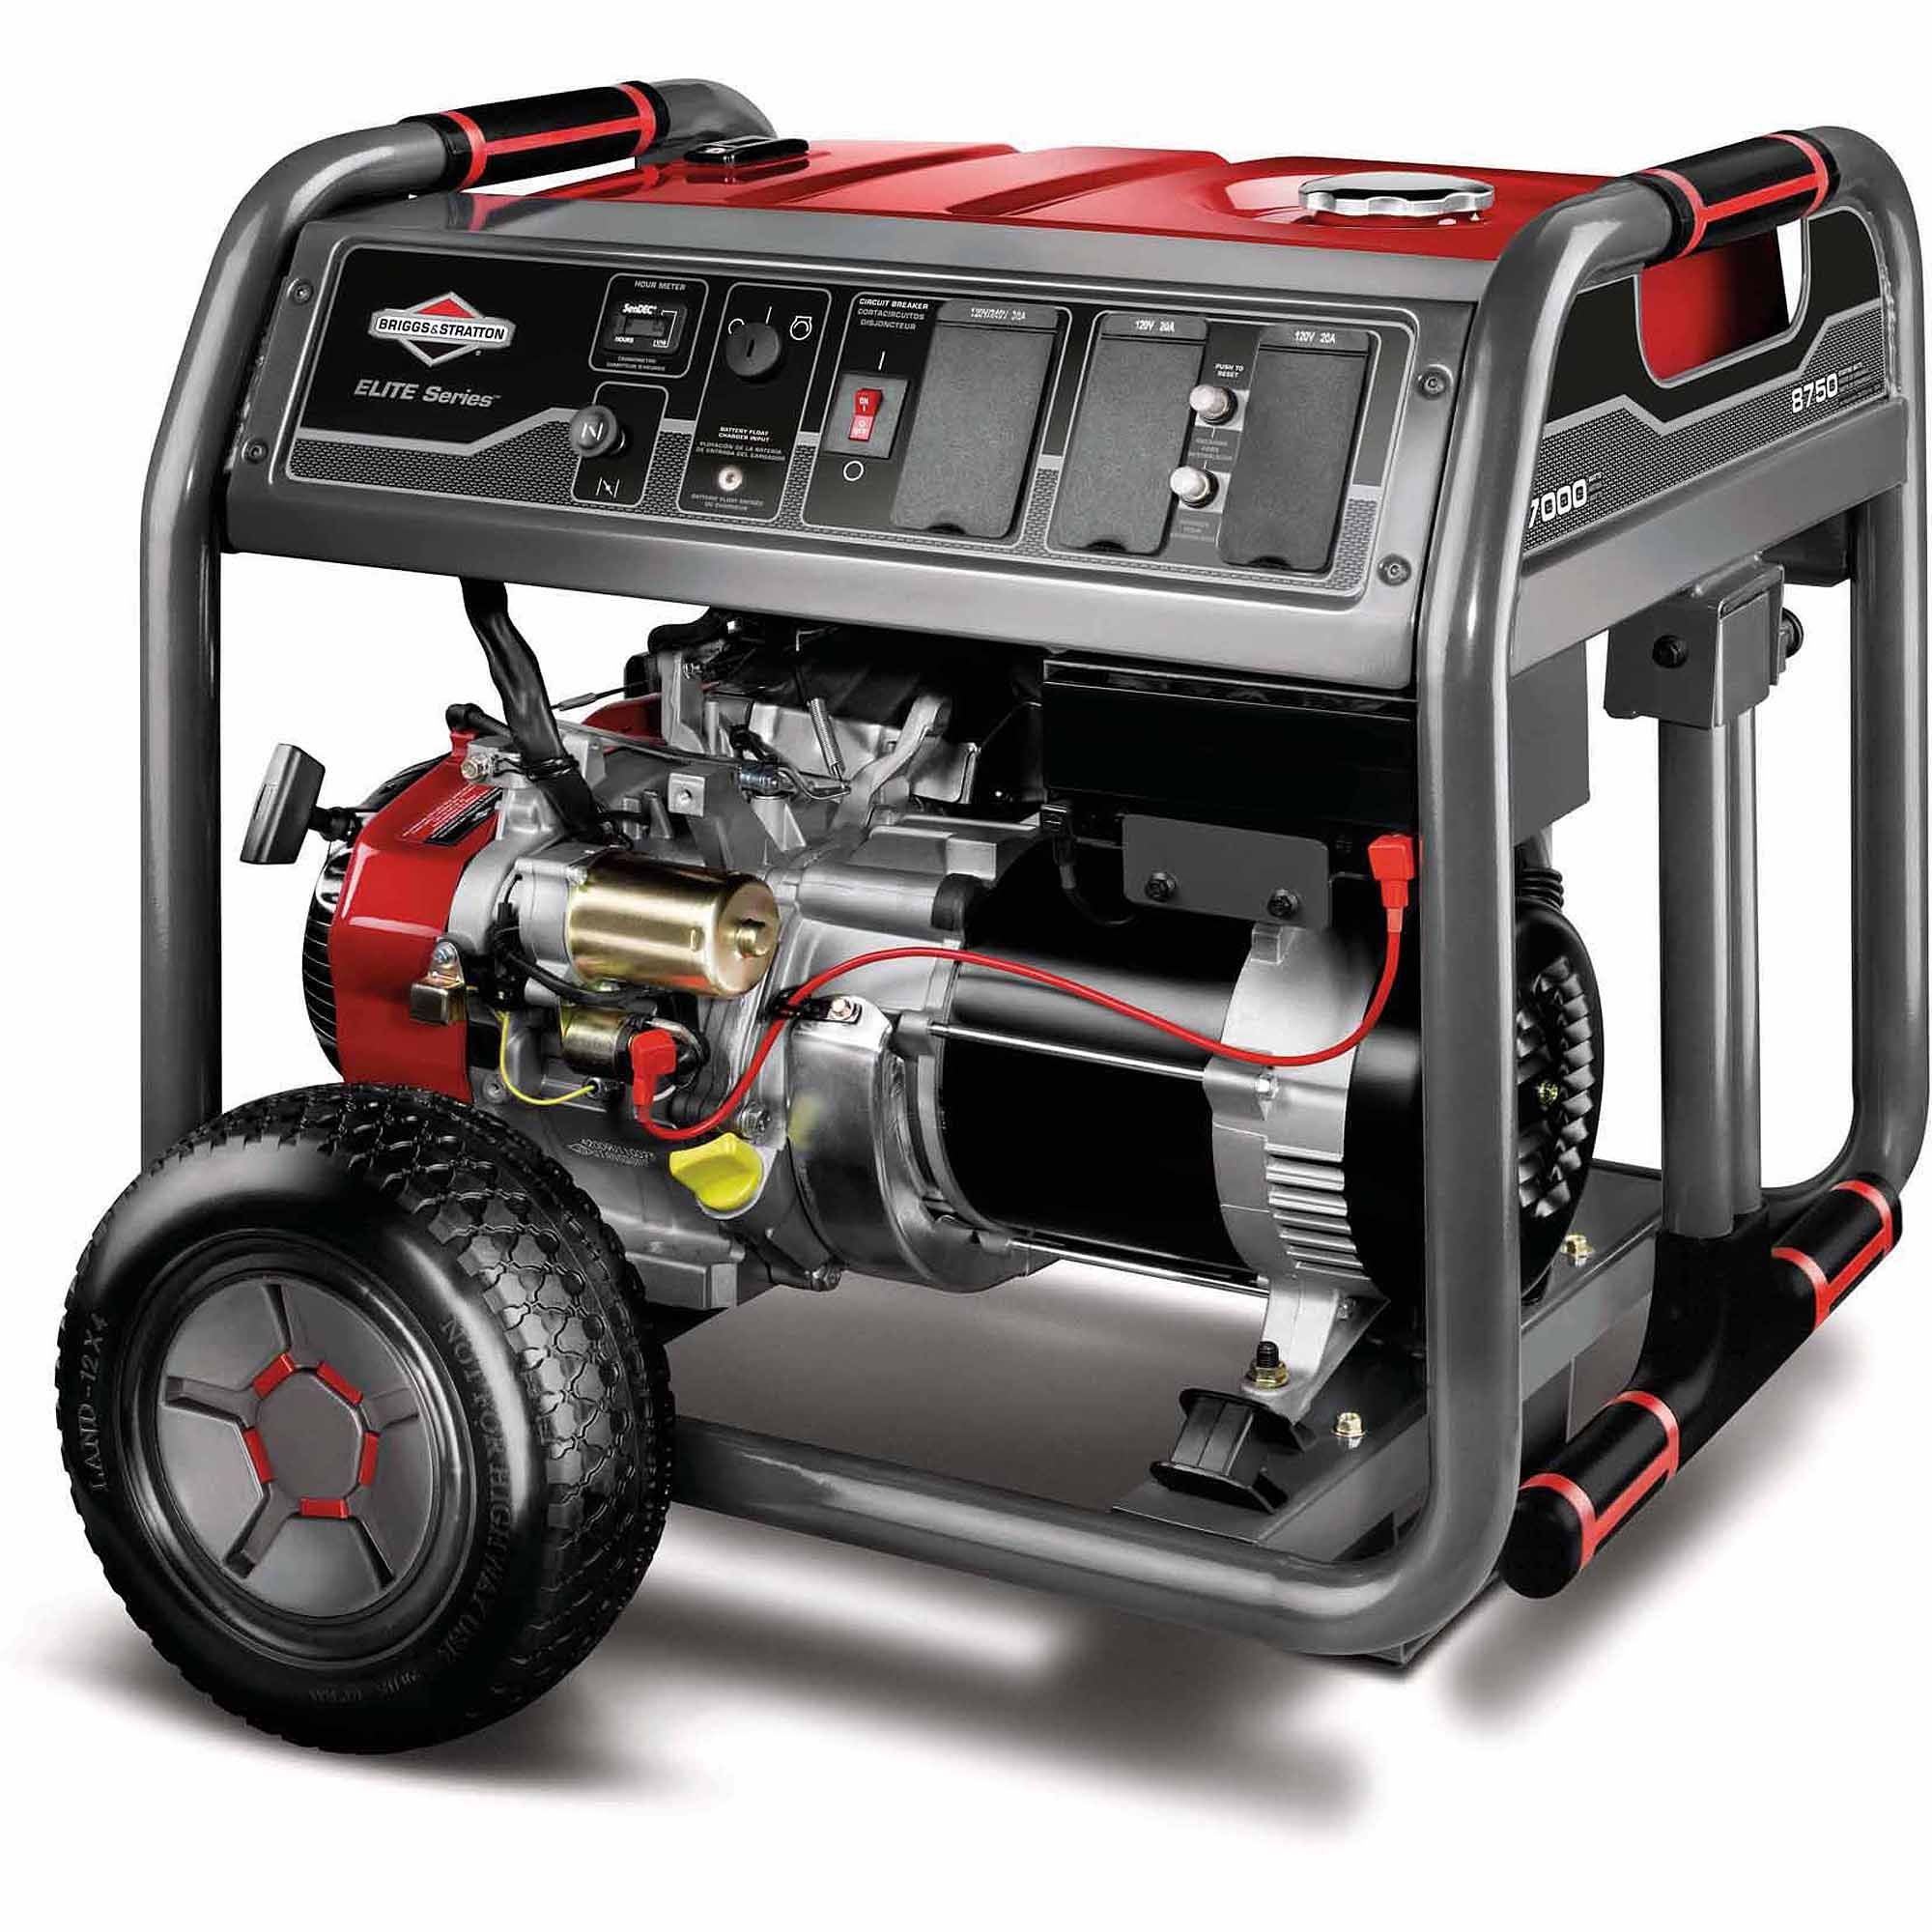 Briggs and Stratton 7000-Watt Gas Powered Portable Generator with 2100 Series 420cc Engine and Key Electric Start